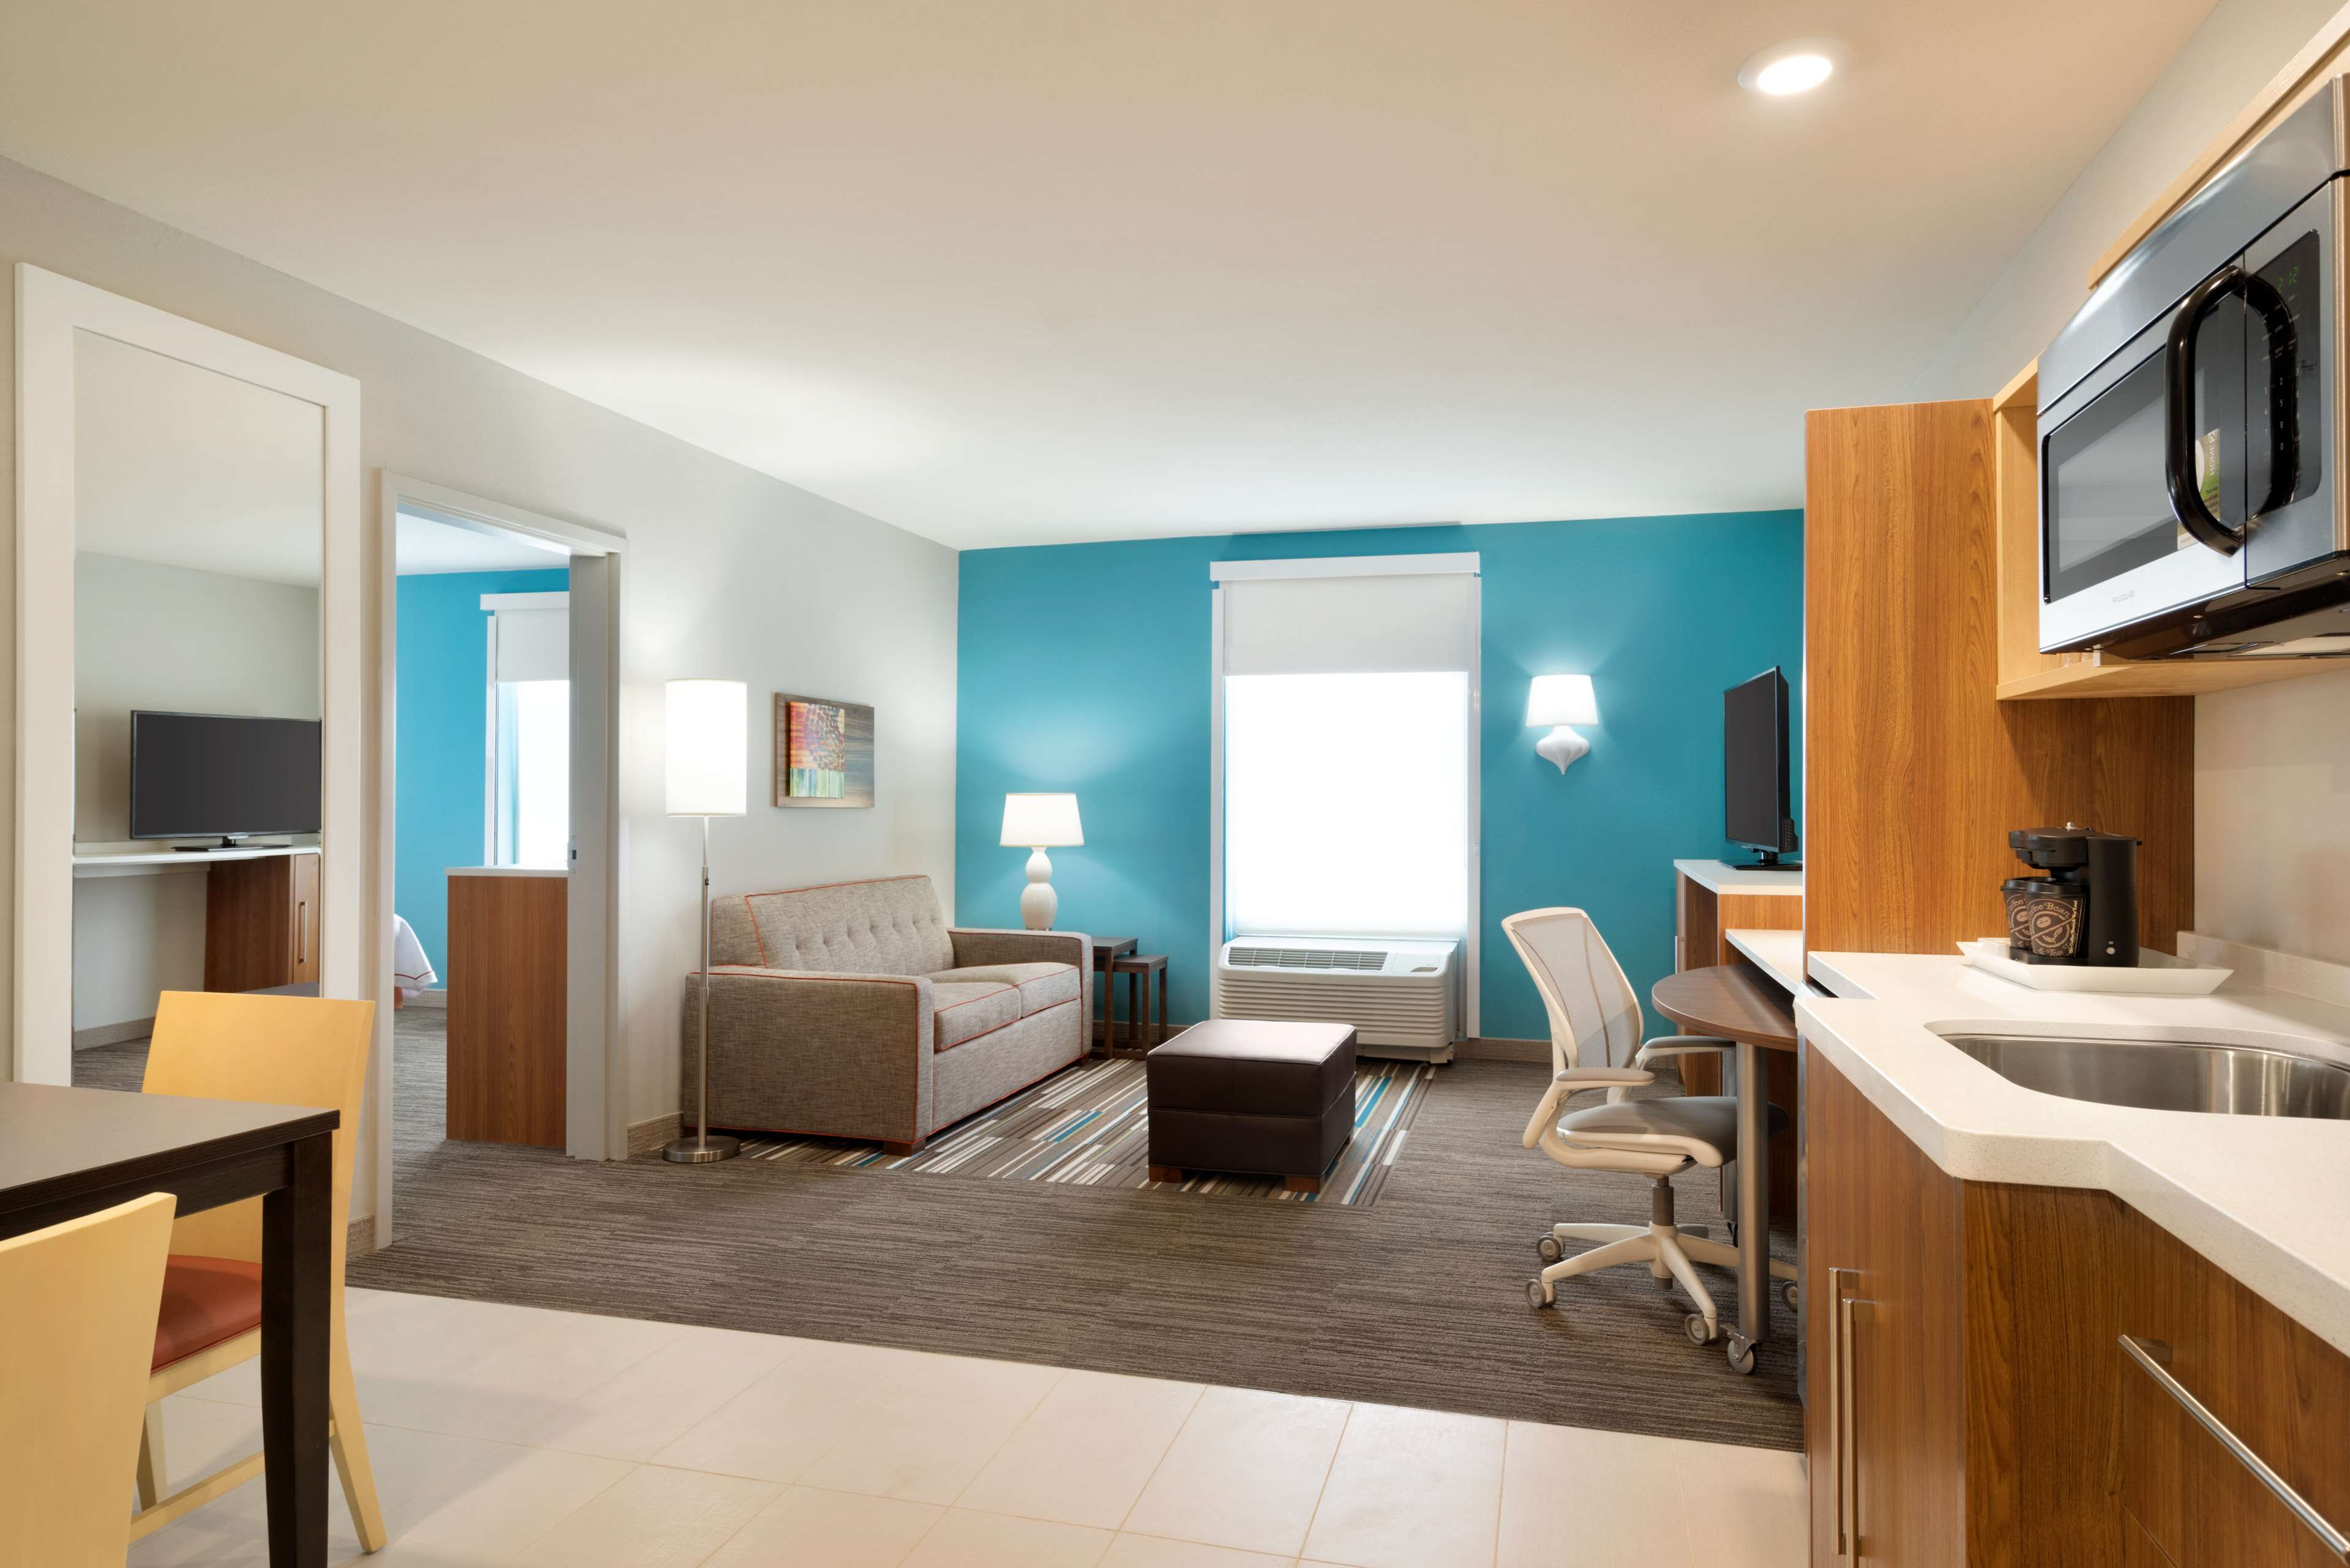 Home2 Suites by Hilton Roanoke image 29